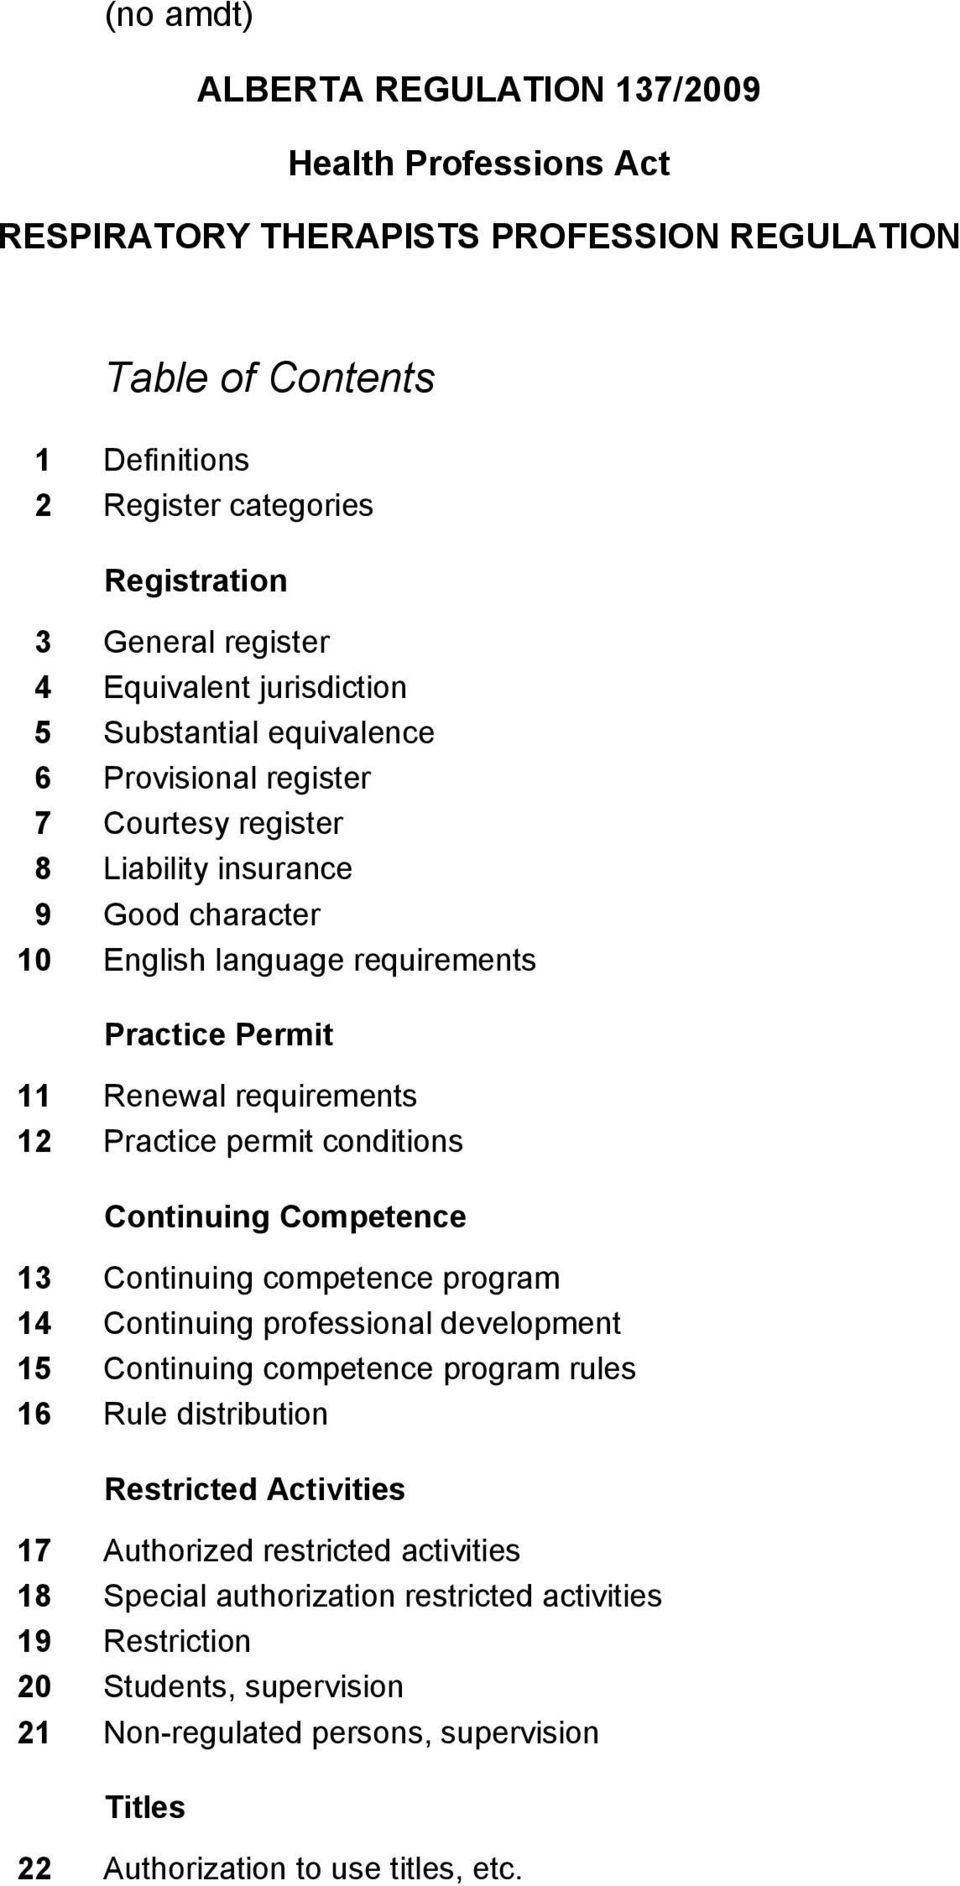 requirements 12 Practice permit conditions Continuing Competence 13 Continuing competence program 14 Continuing professional development 15 Continuing competence program rules 16 Rule distribution